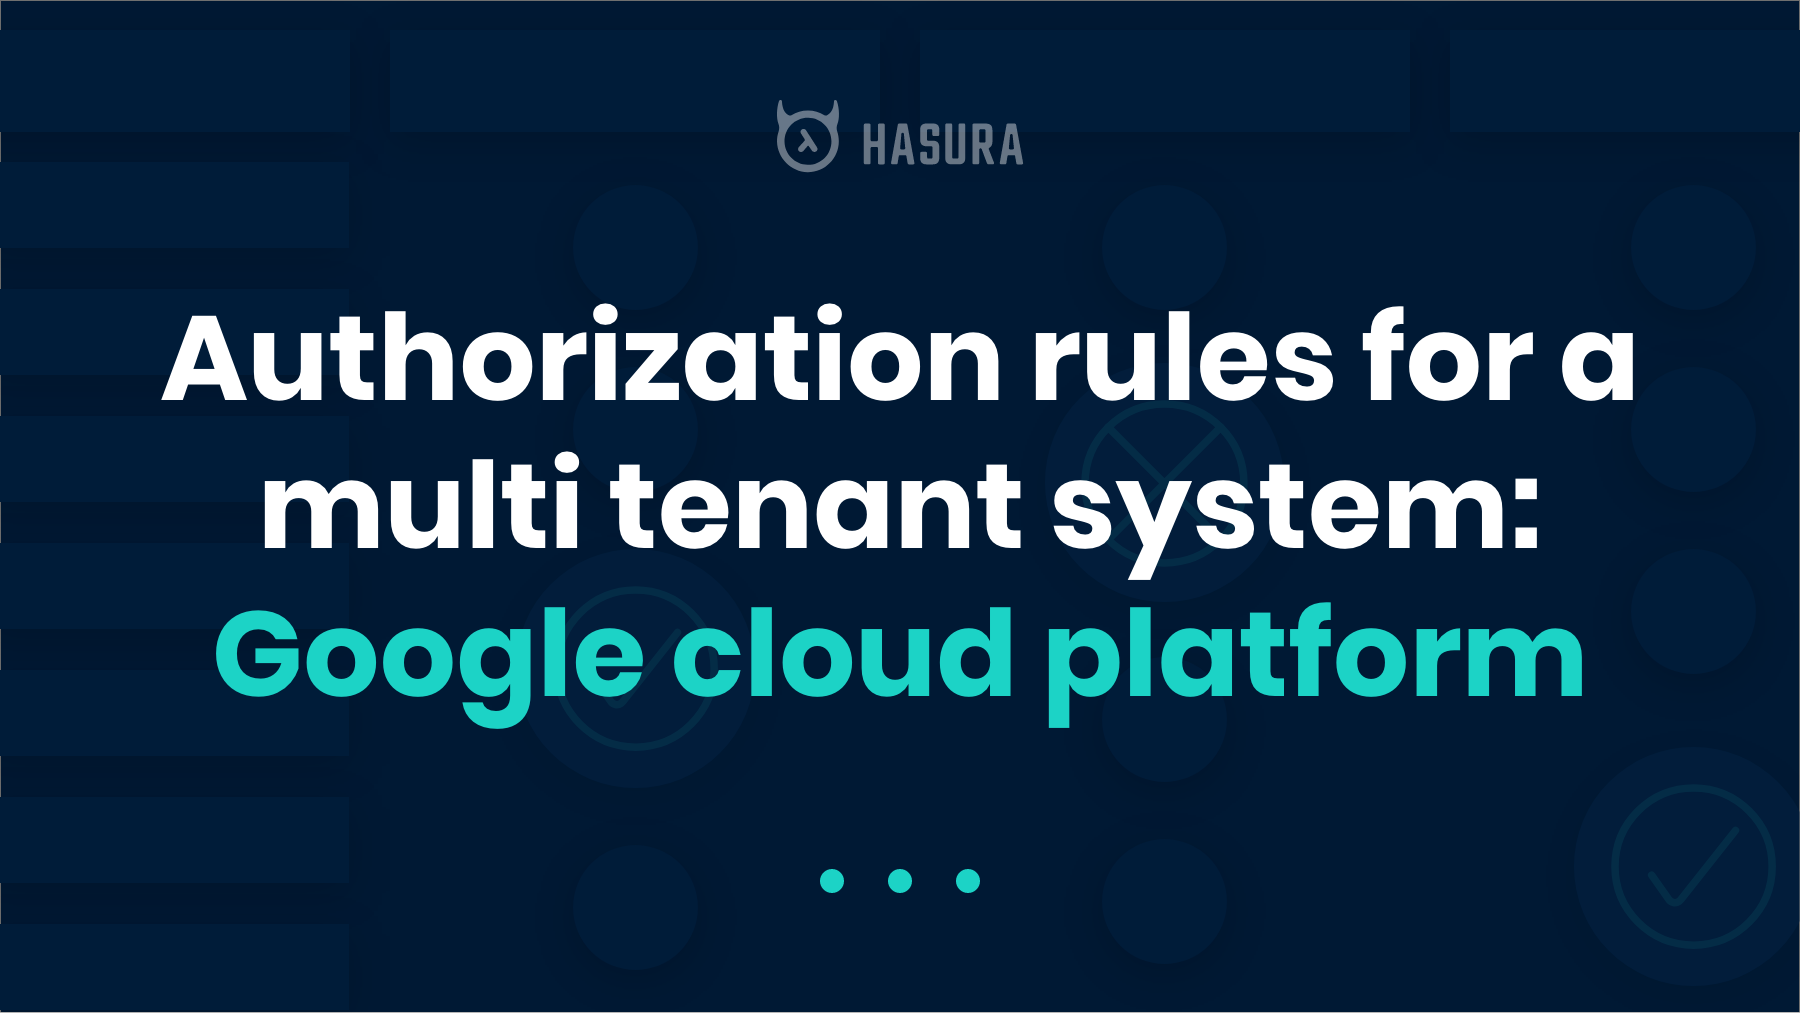 Authorization rules for a multi-tenant system - Google cloud platform